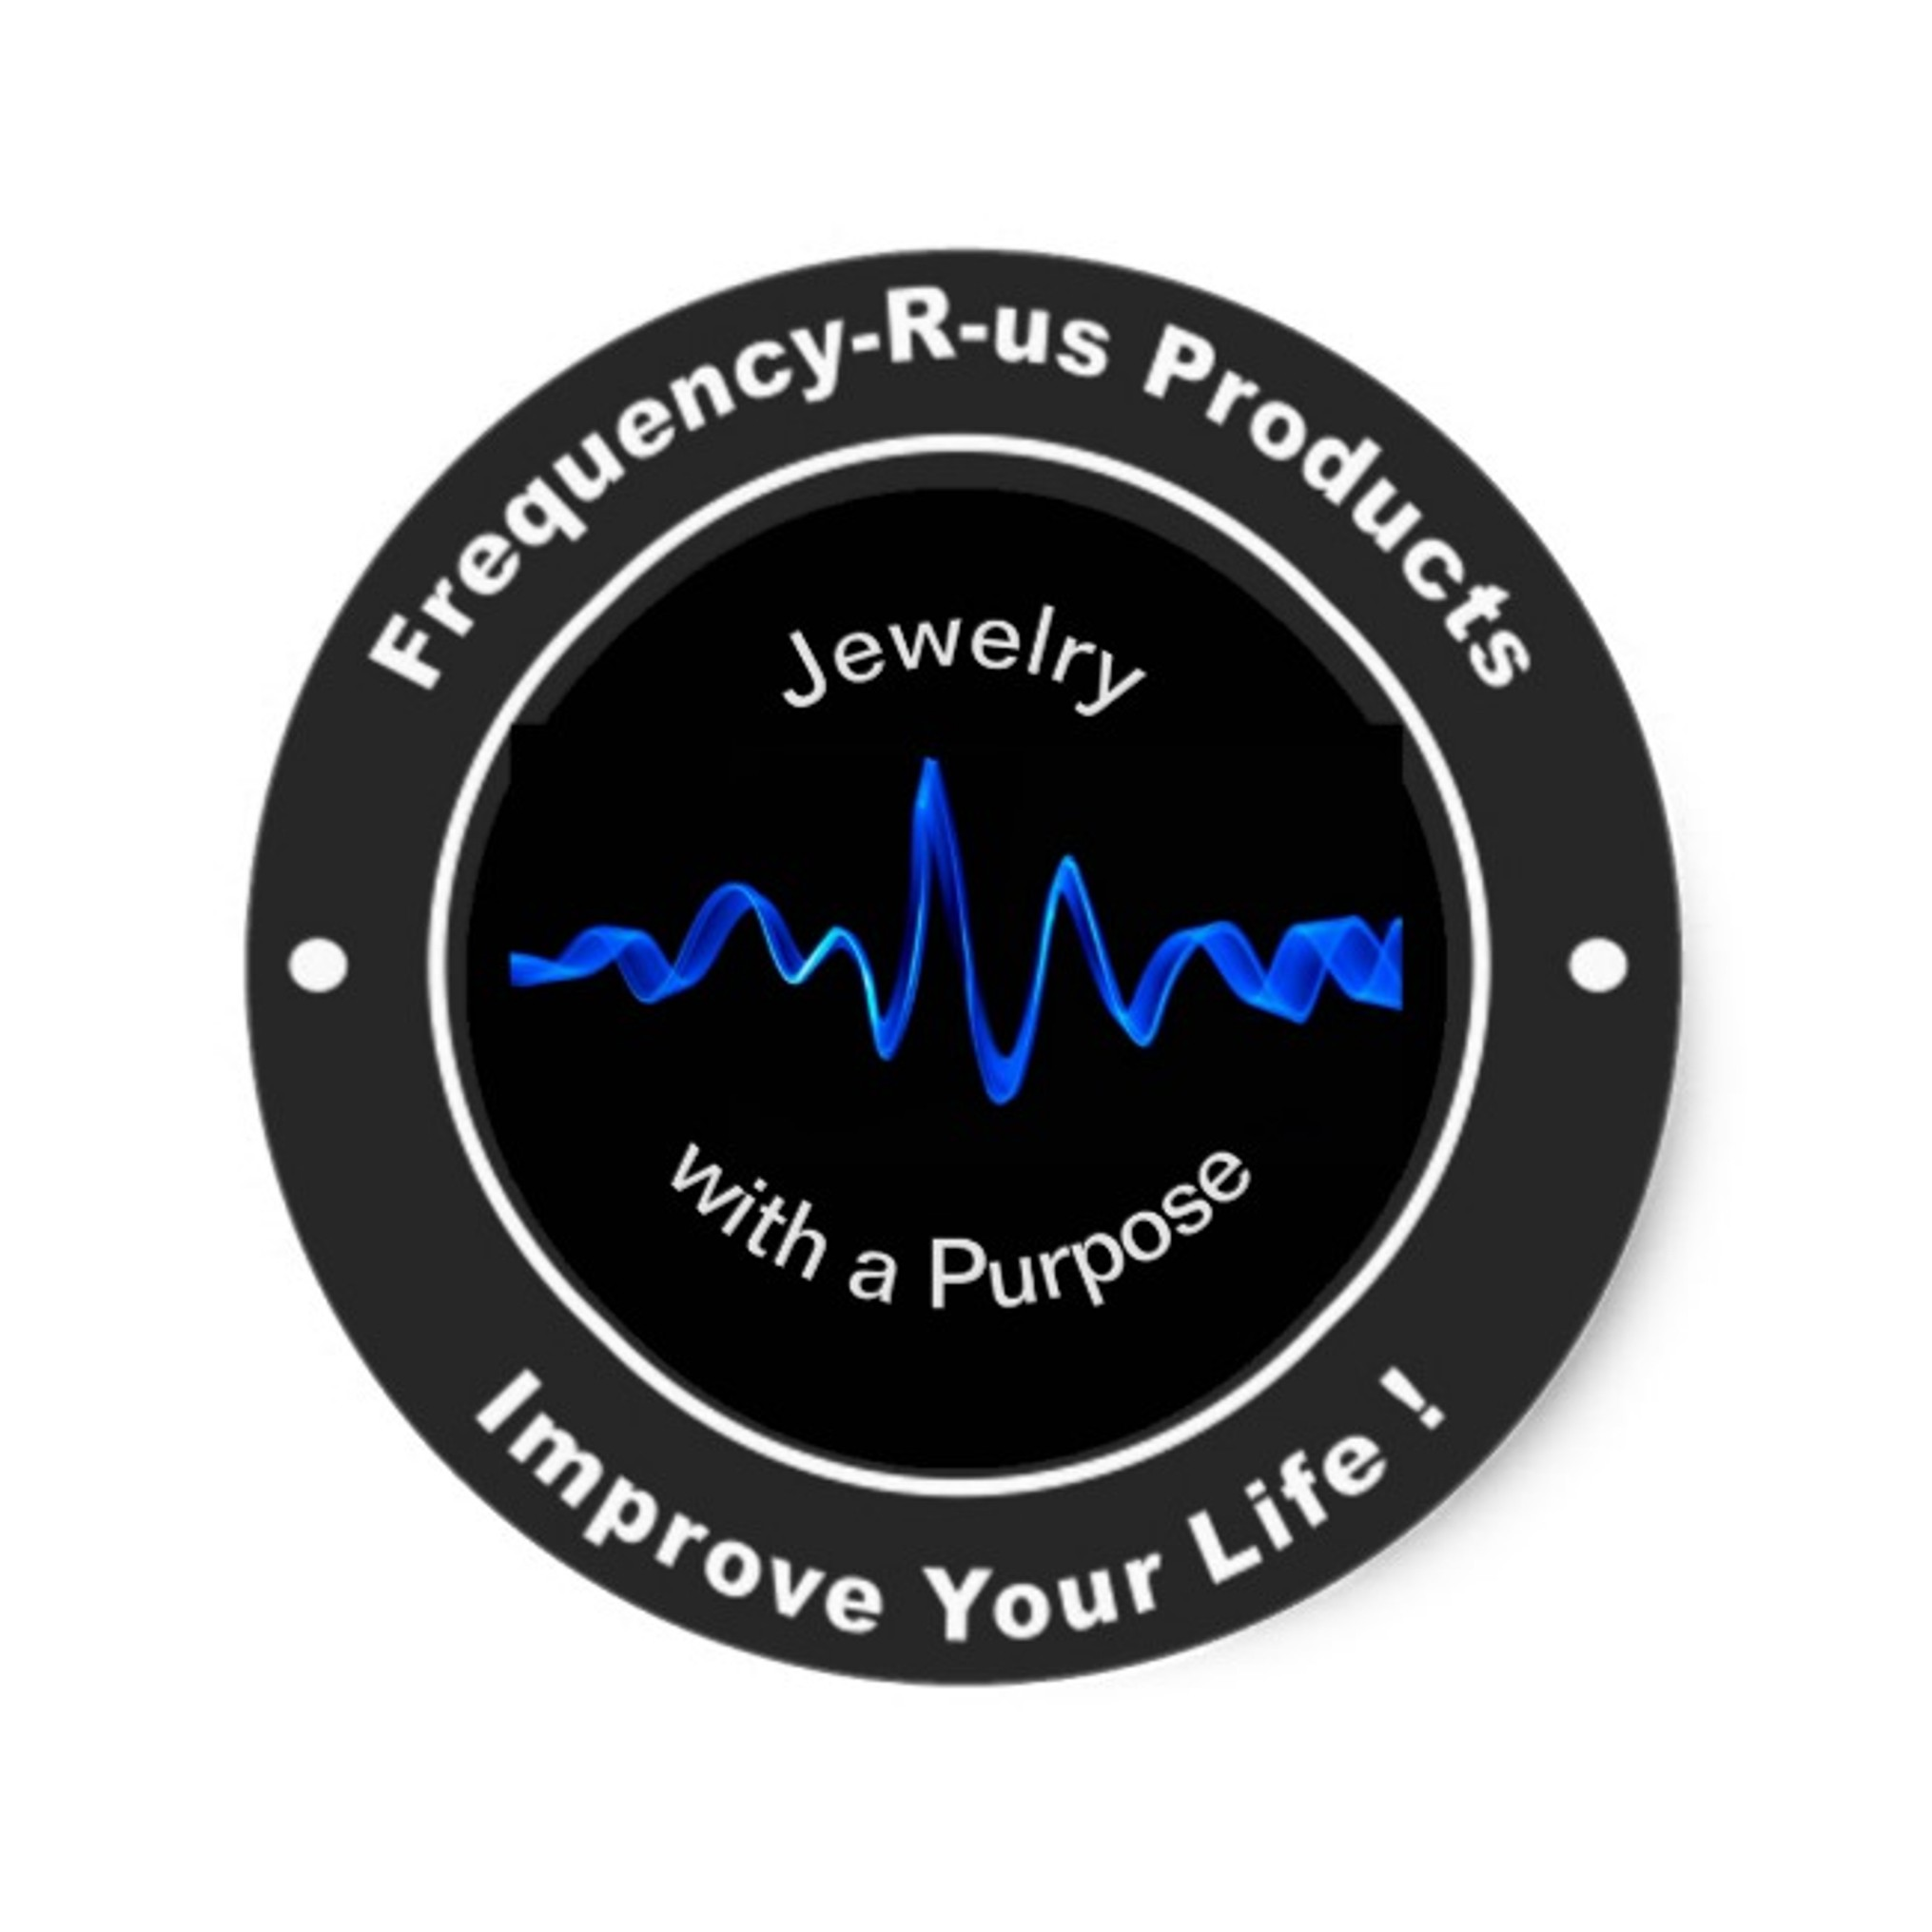 Frequency-R-us Products